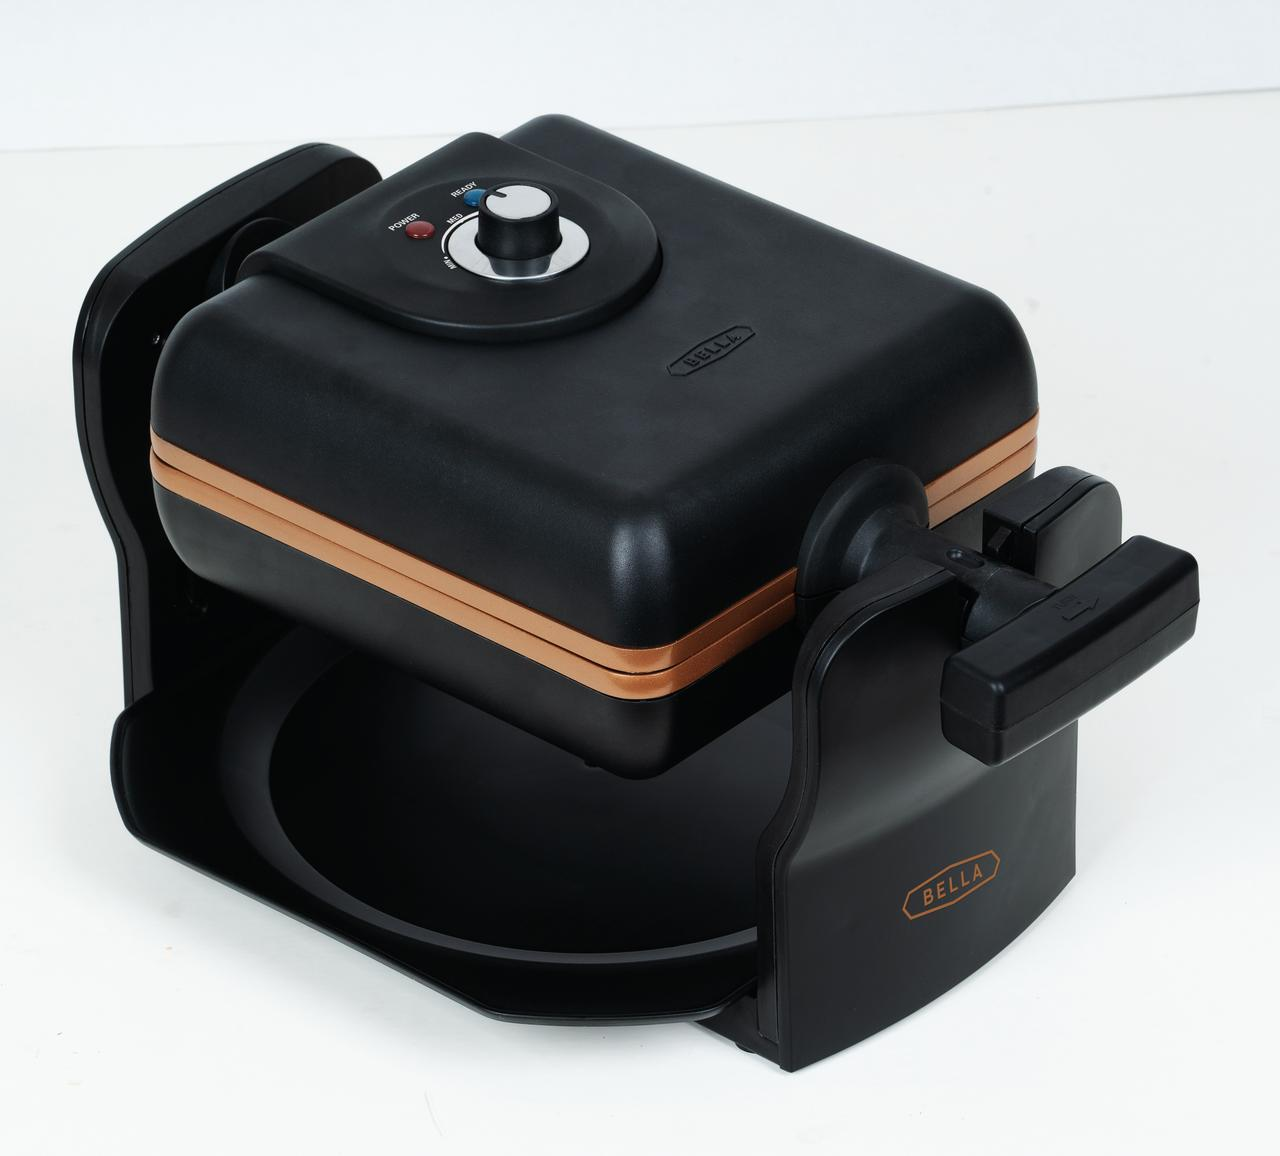 BELLA 4 Slice Rotating Belgian Waffle Maker, Black